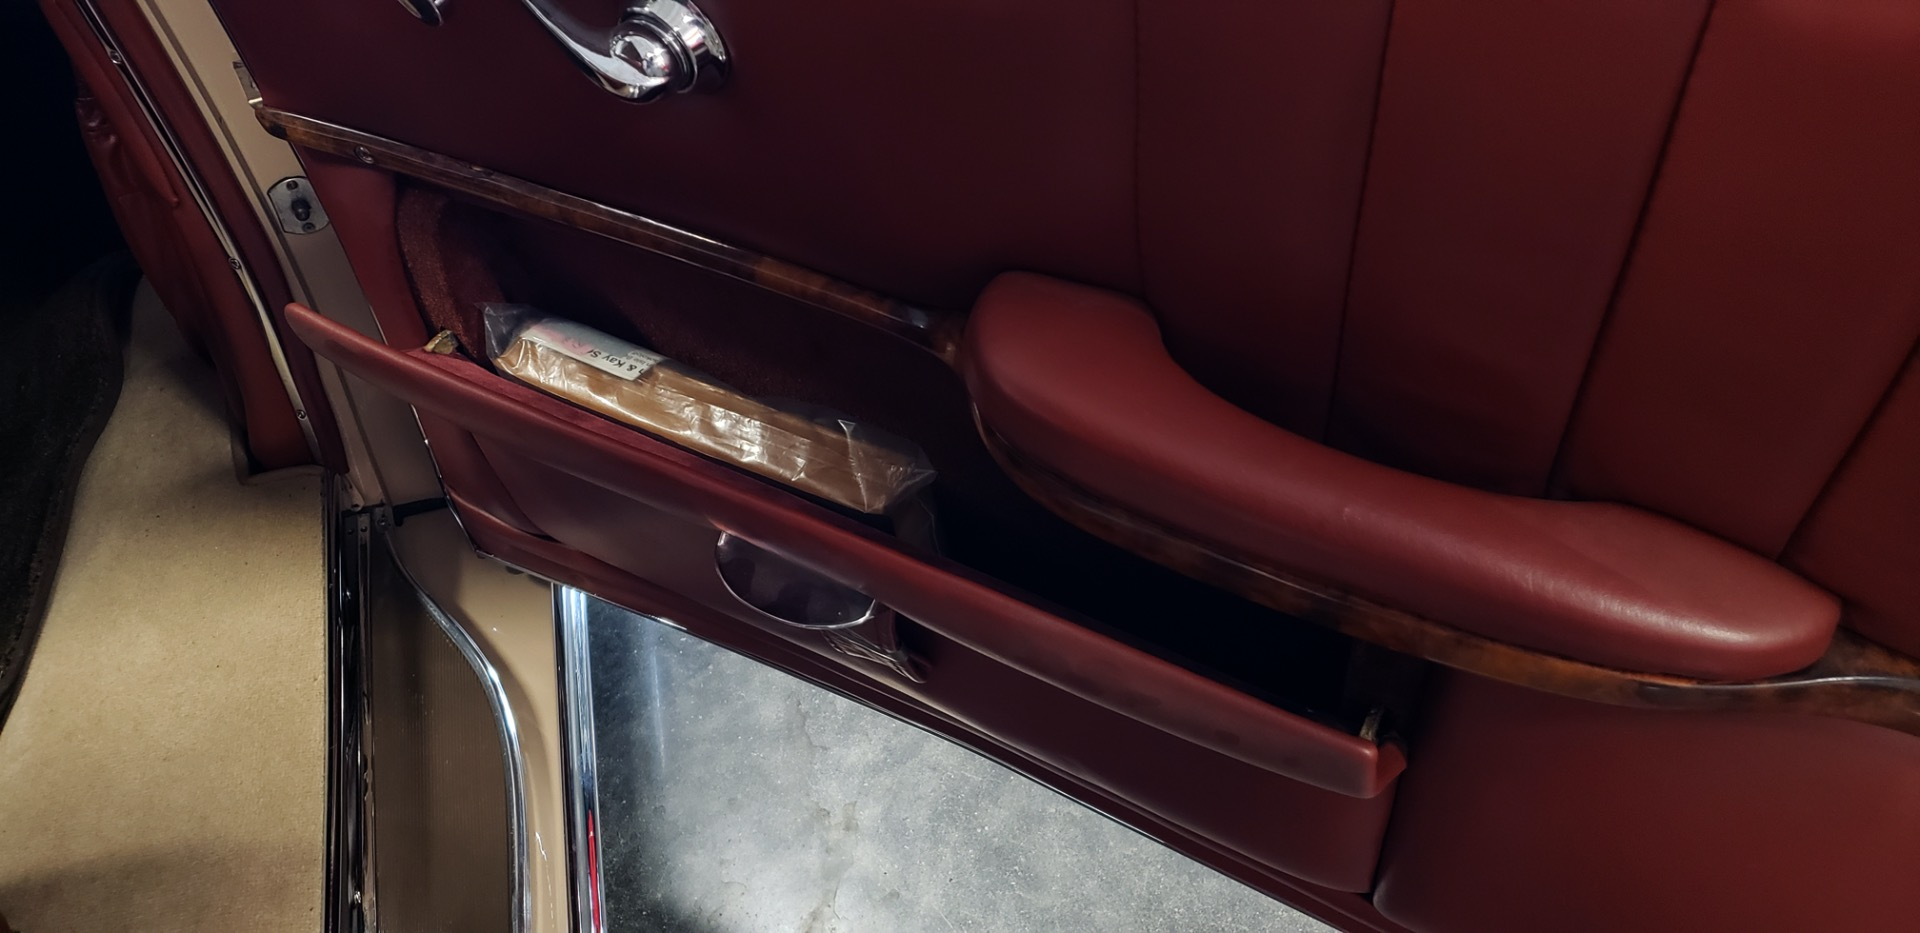 Used 1957 Mercedes-Benz 220 S Cabriolet - Full Restoration for sale Sold at Formula Imports in Charlotte NC 28227 27